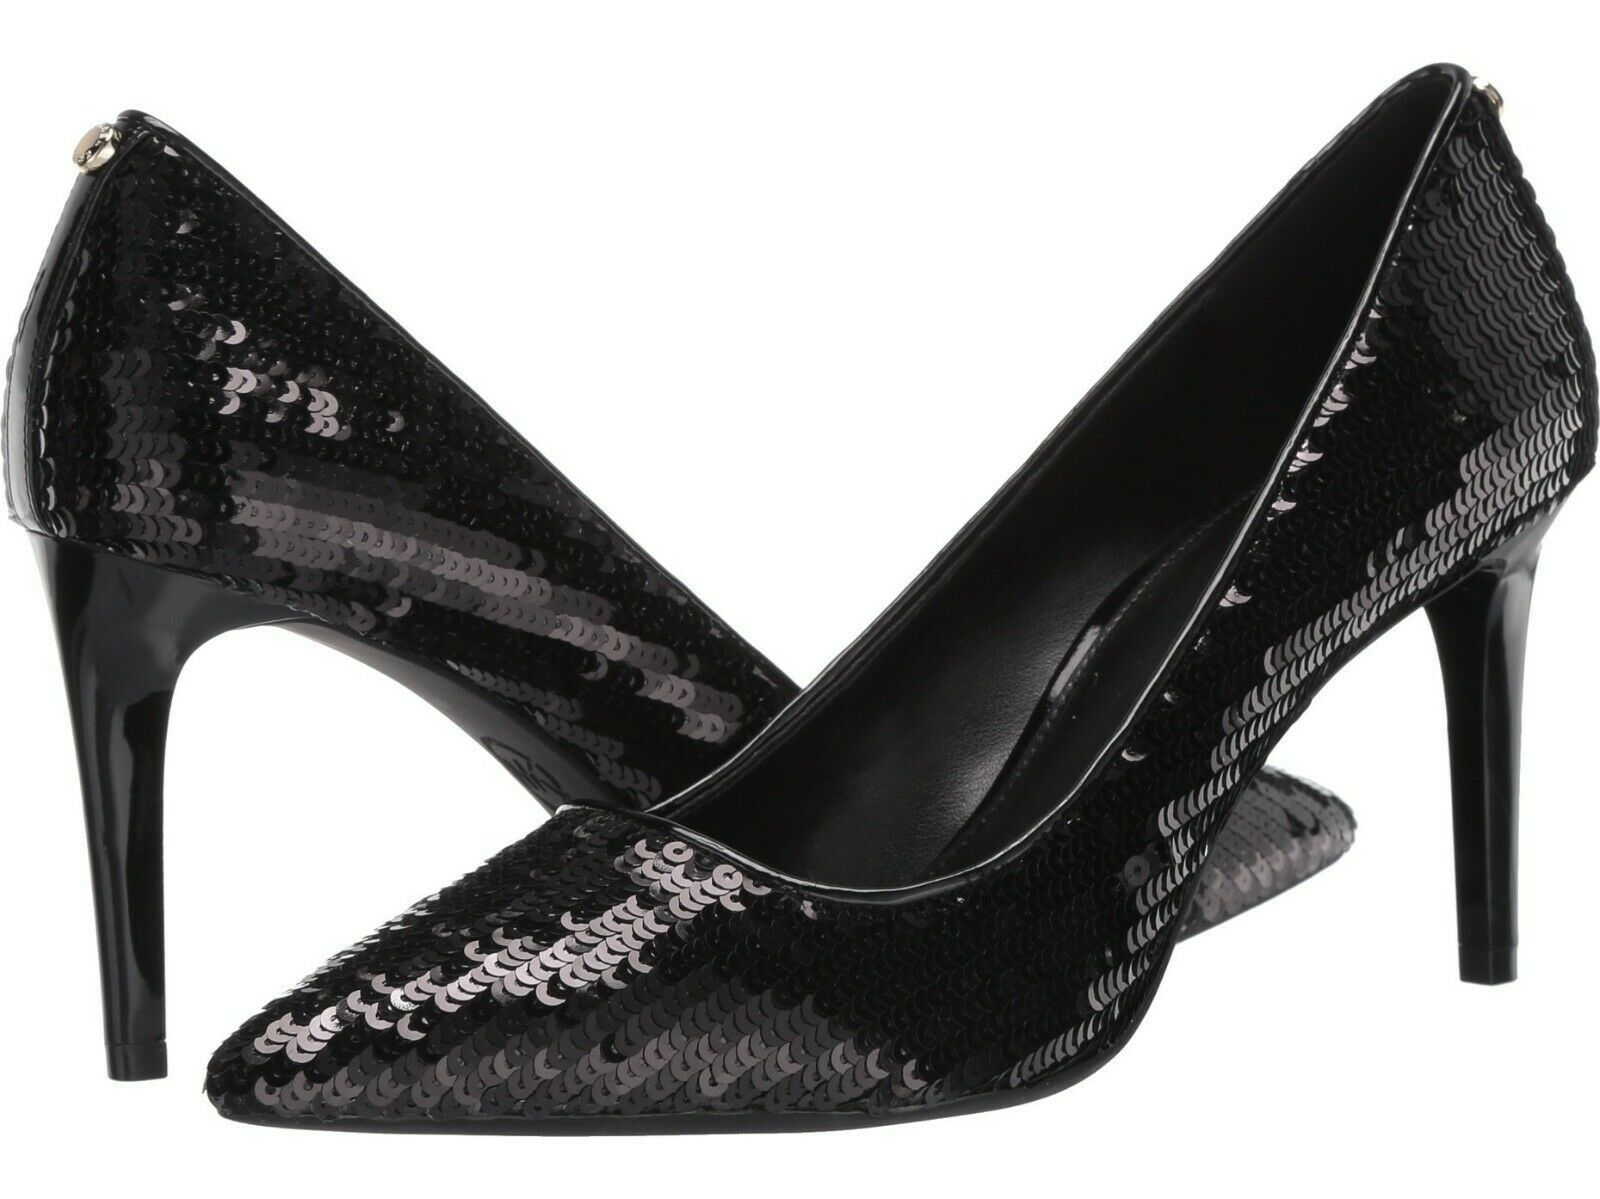 Michael Michael Kors Dorothy Flex Pump Sequins Shoes Black 8 - $79.19